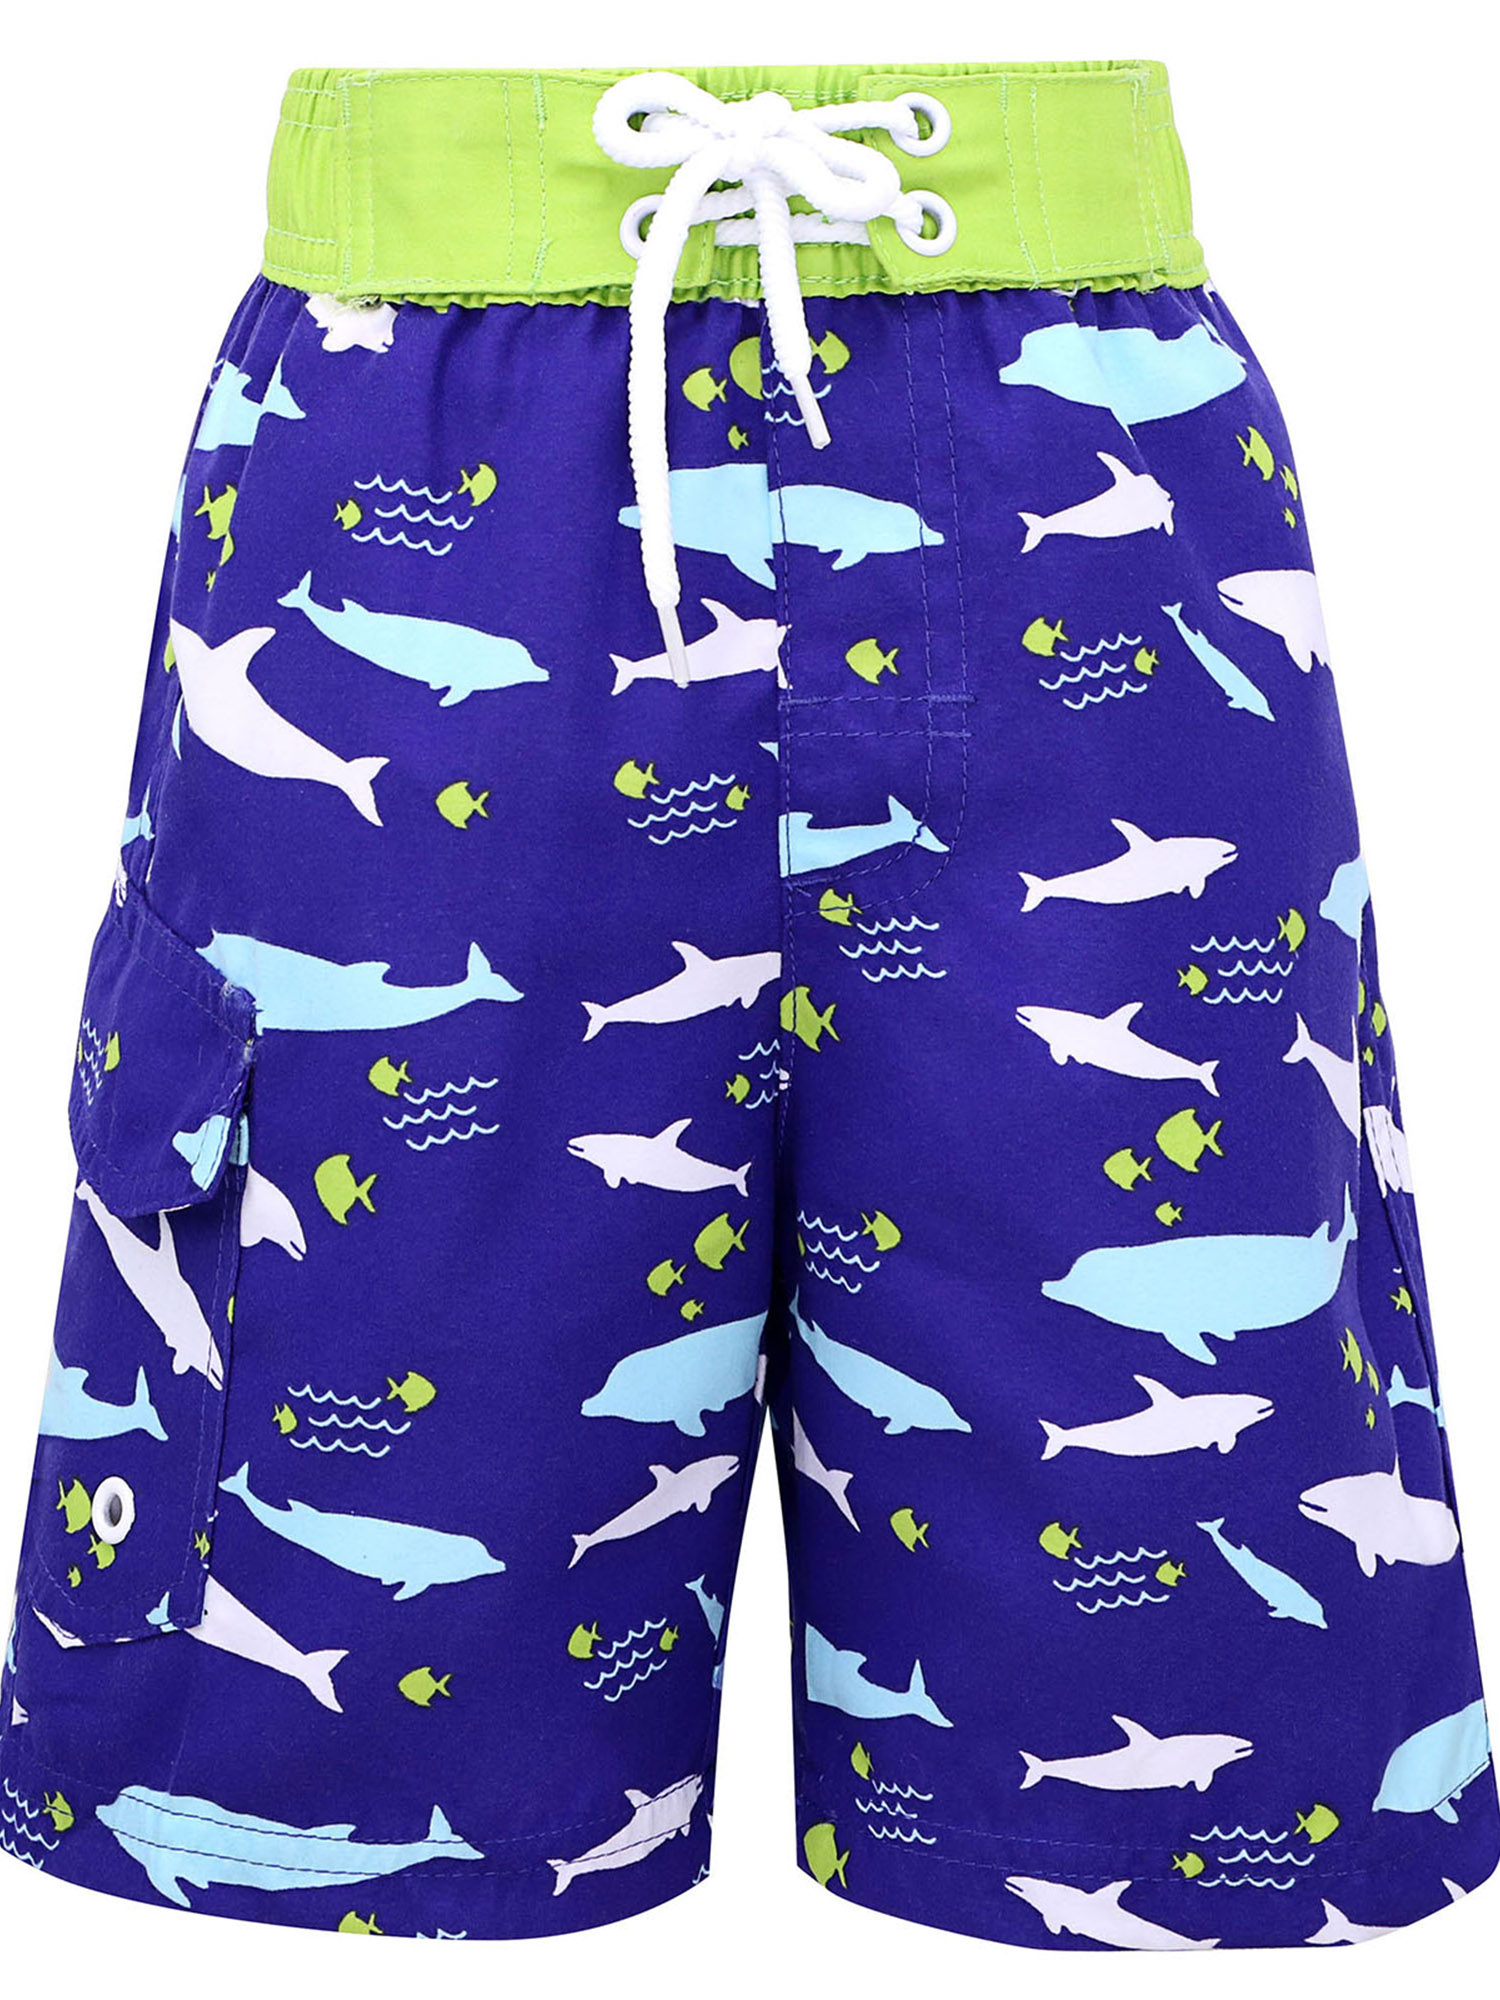 Fast Drying Summer Kids' Swim Trunks w/UPF 50+ Sun Protection, Shark